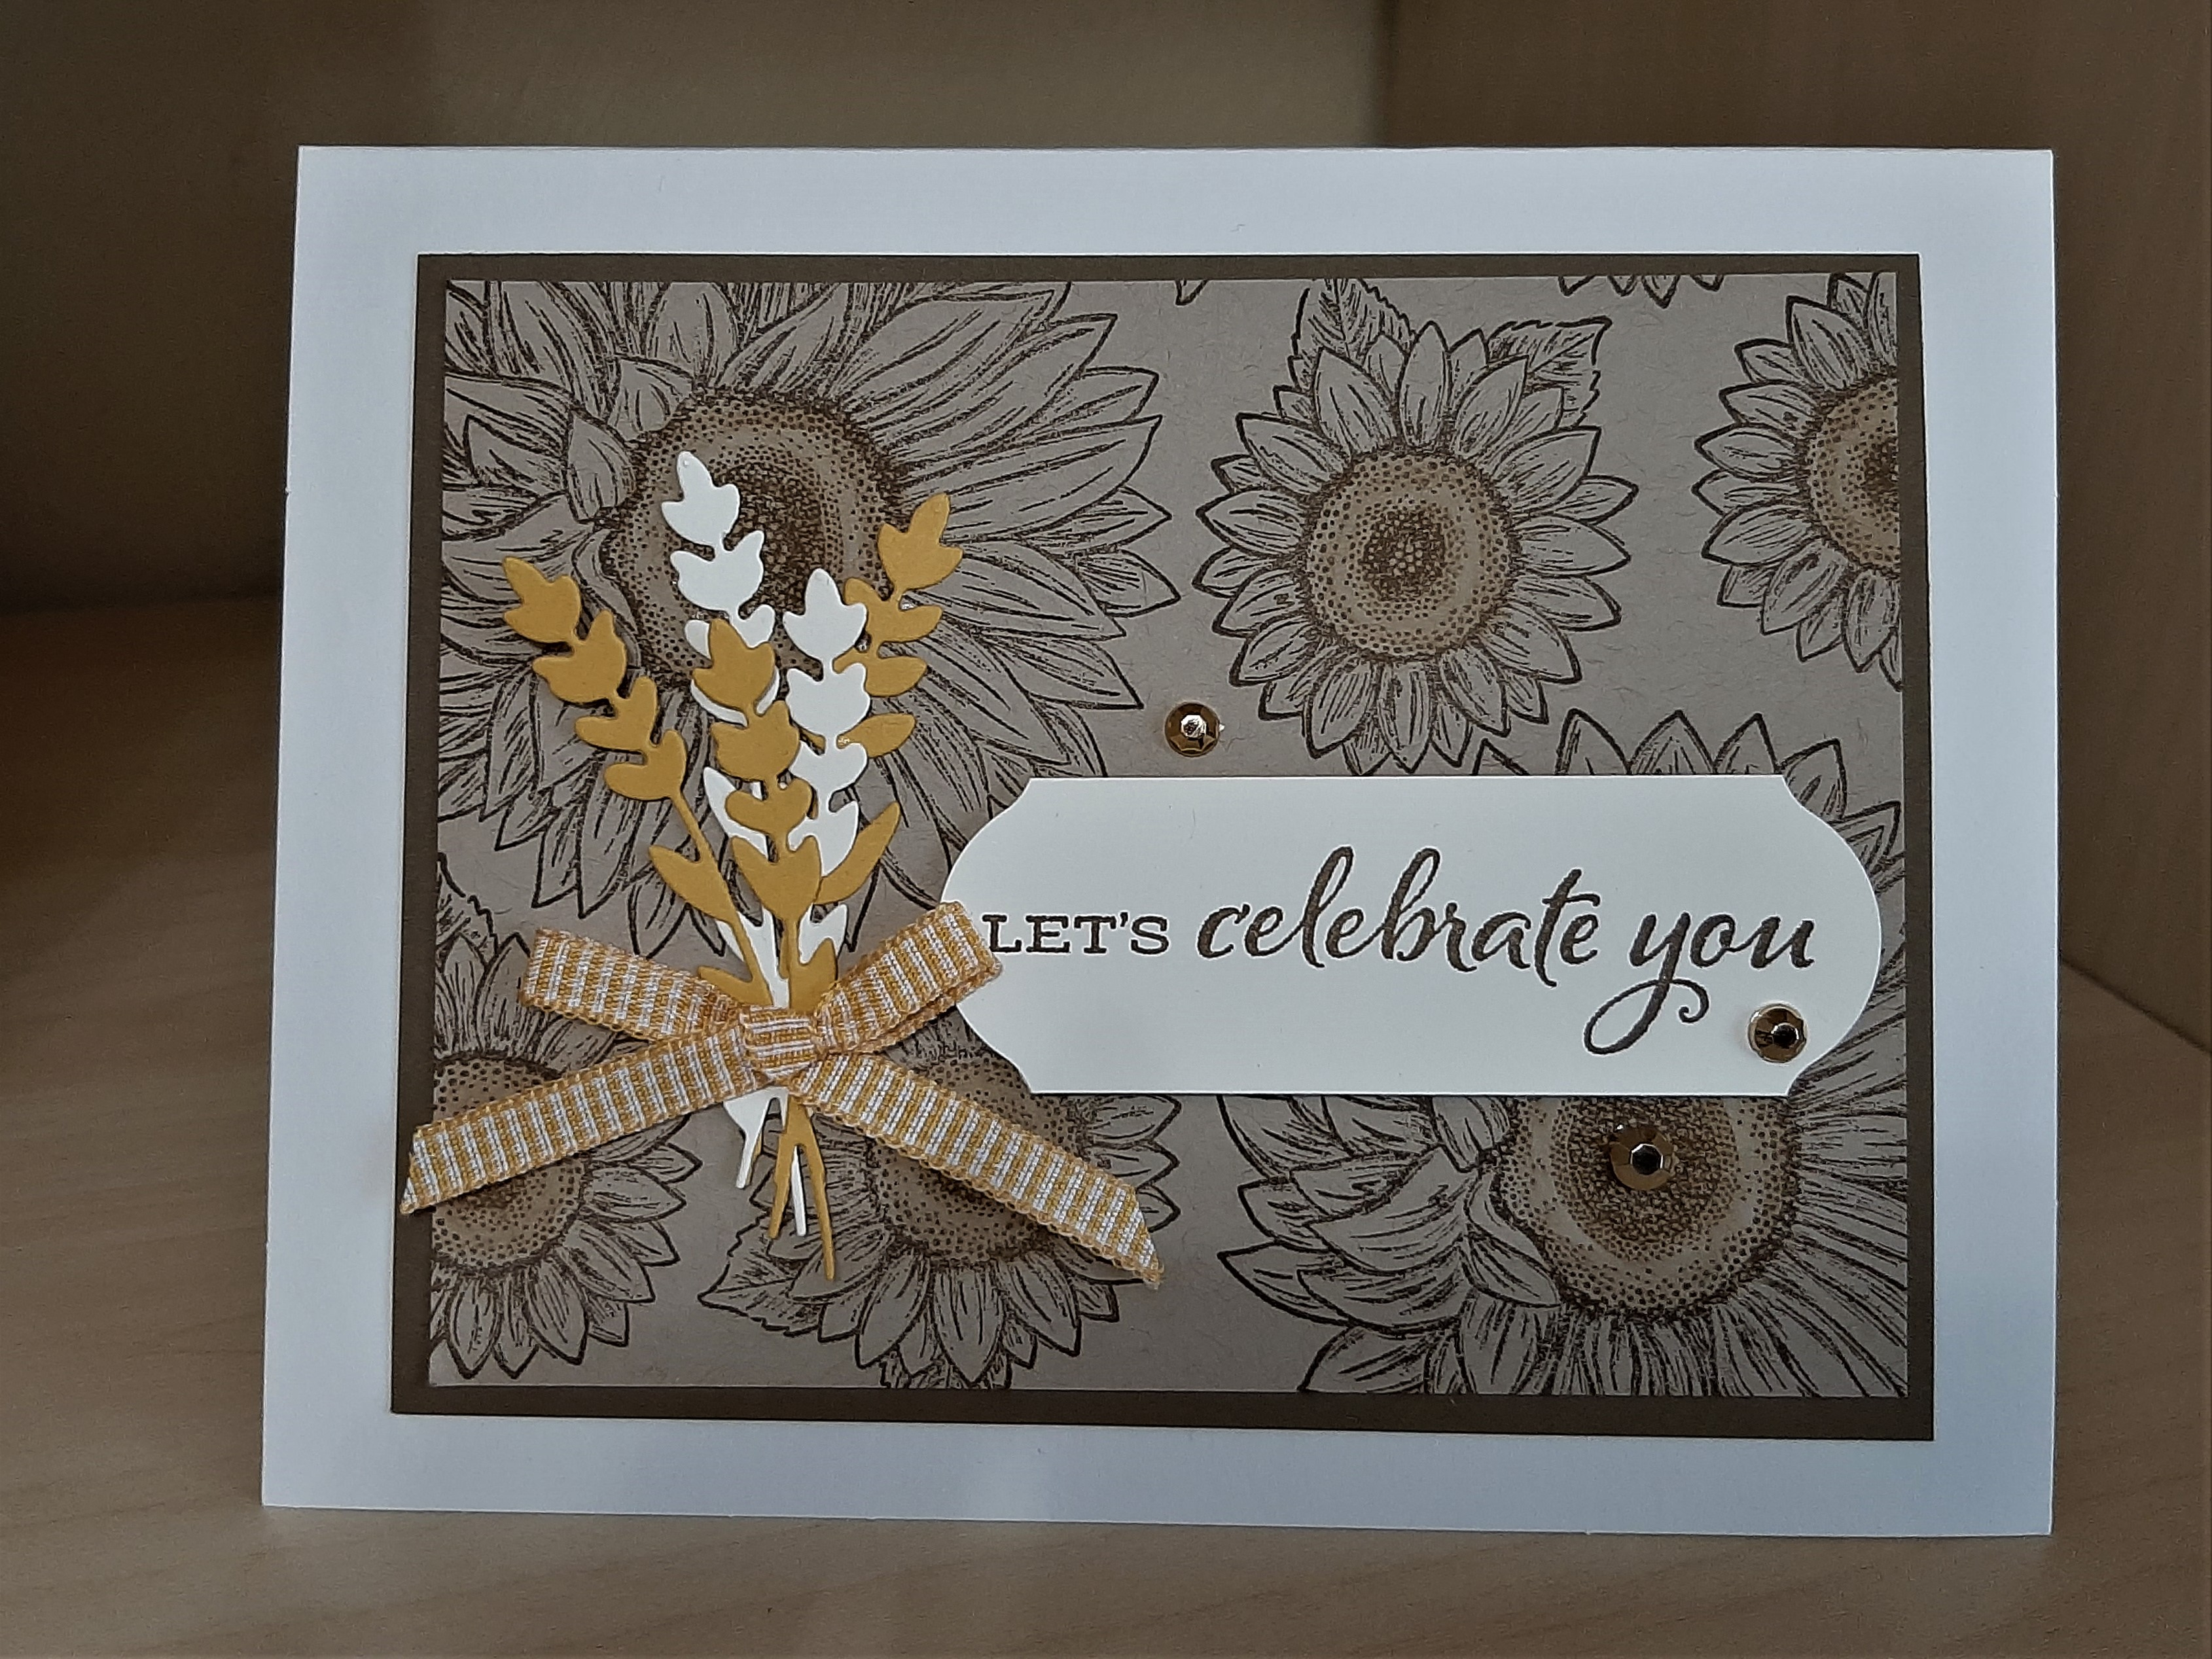 celebrating sunflowers - browns and golds